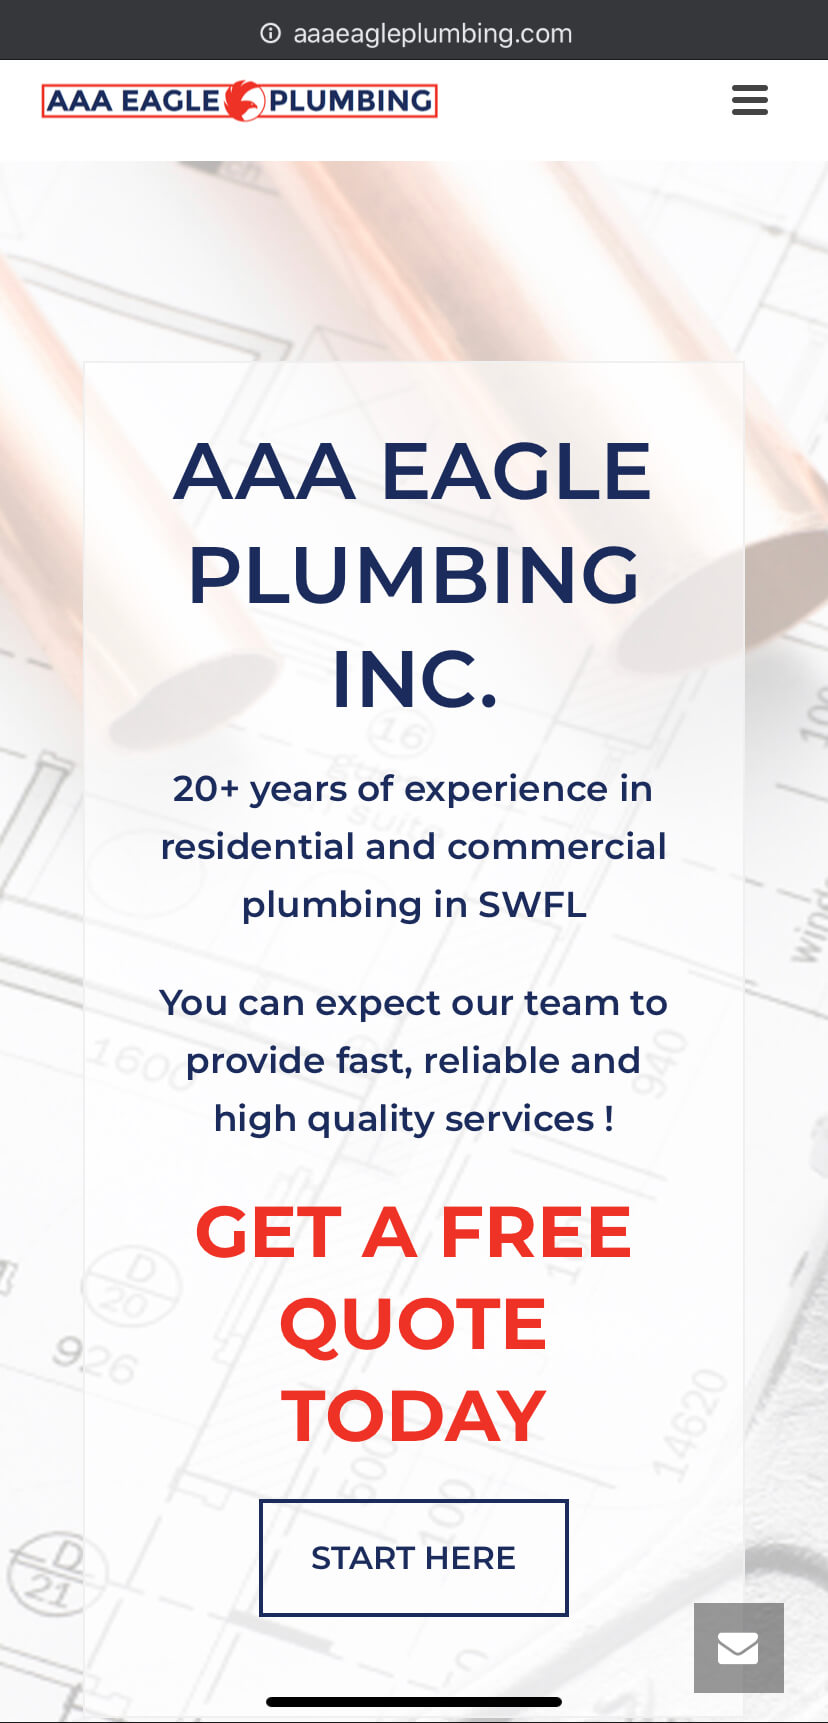 aaa eagle plumbing splash page mobile